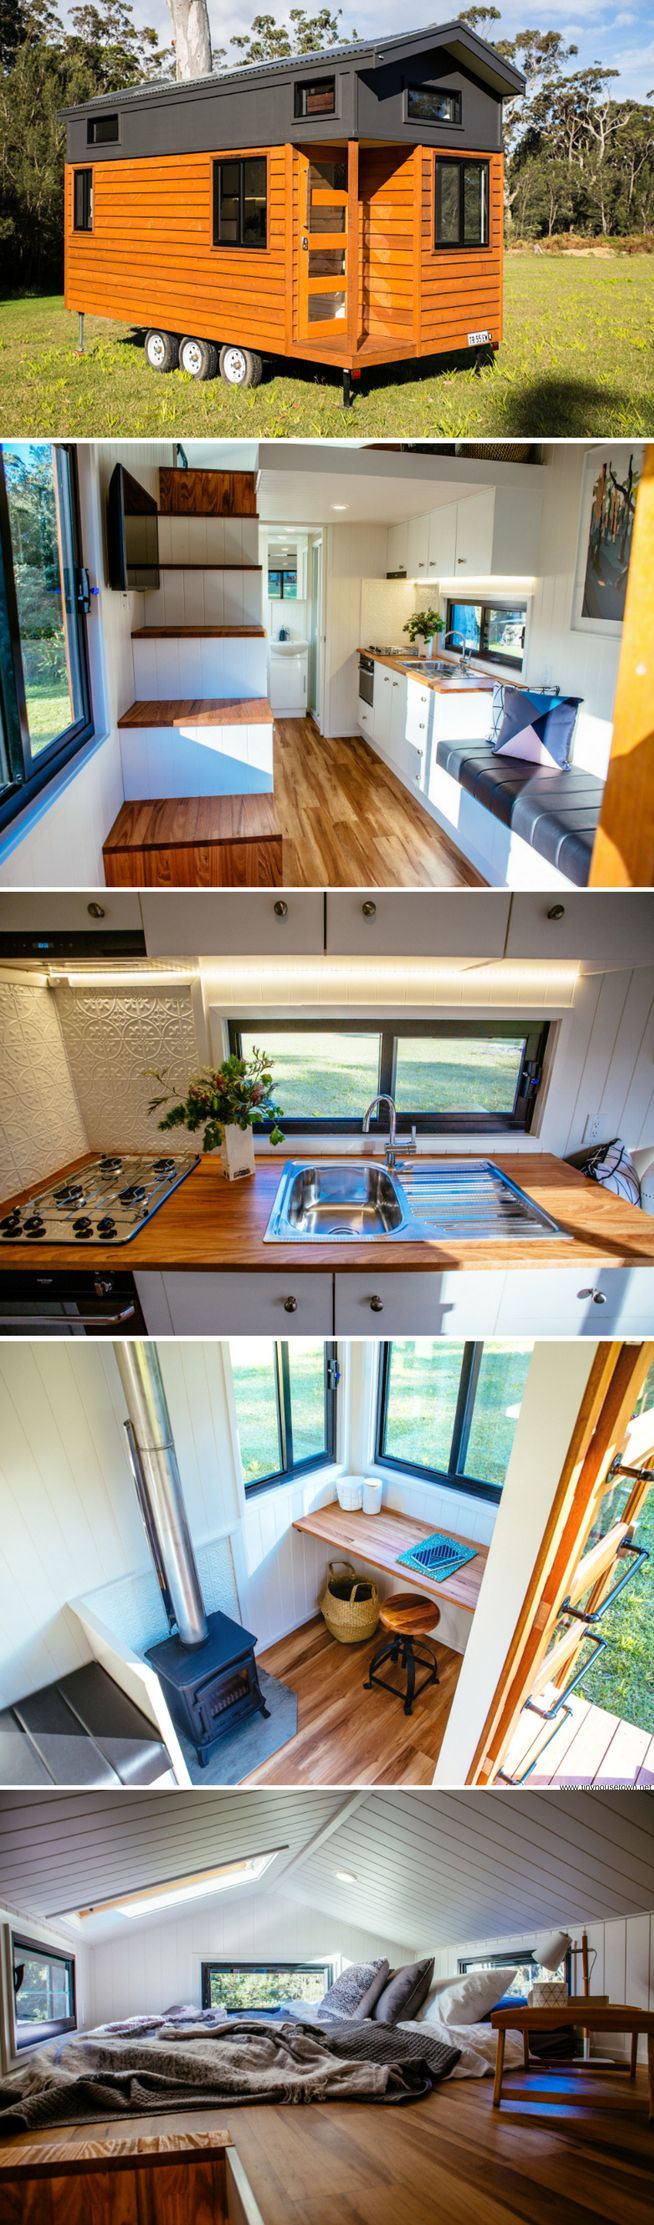 Best Ideas About Tiny Homes Interior On Pinterest Tiny Homes - Interiors of tiny houses